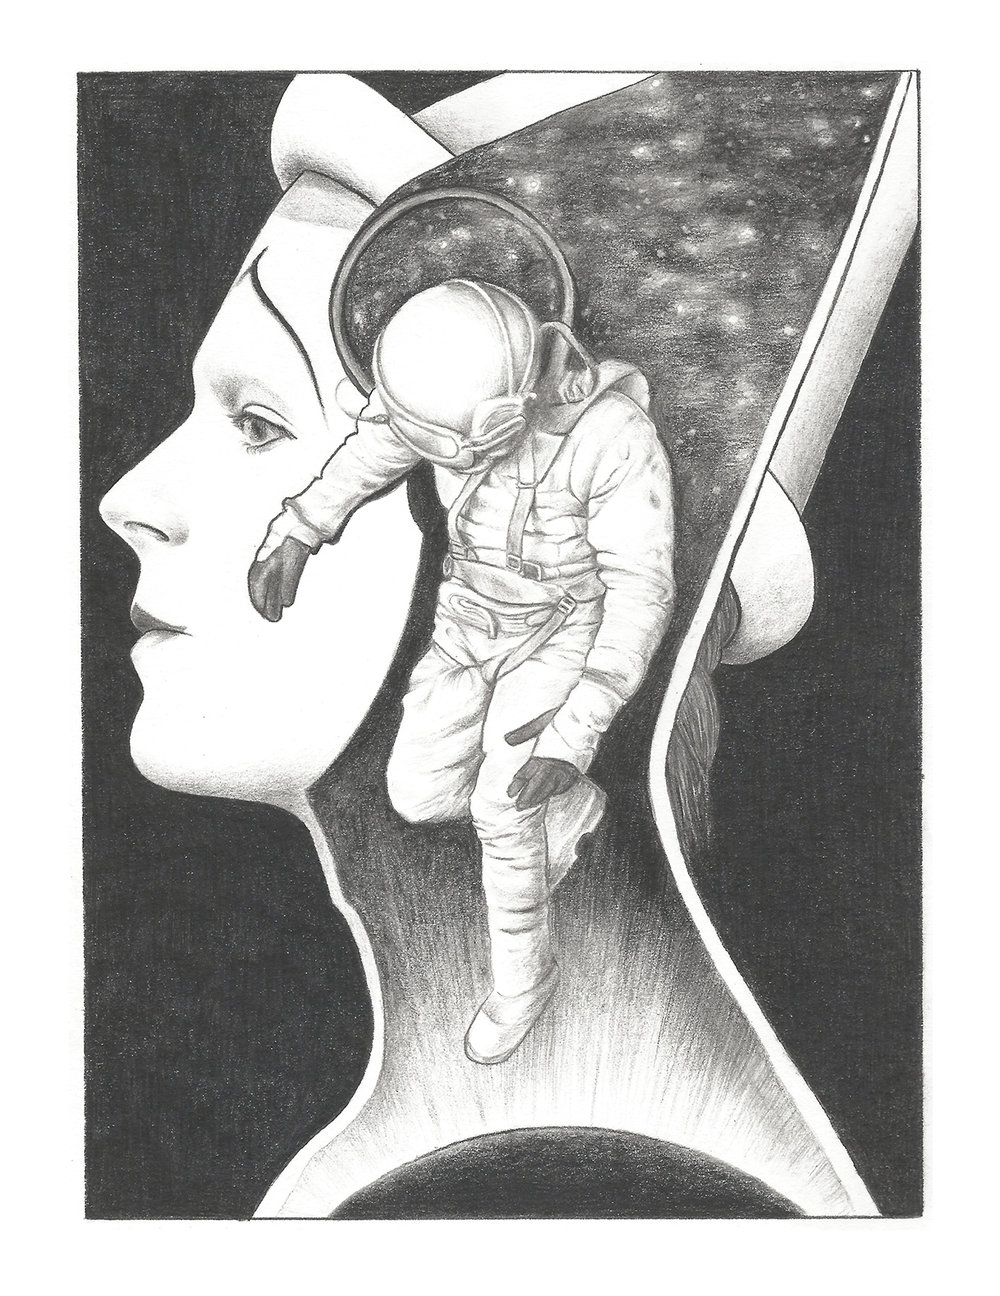 The_Man_Who_Was_In_Space_Lucy_Salgado.jpg